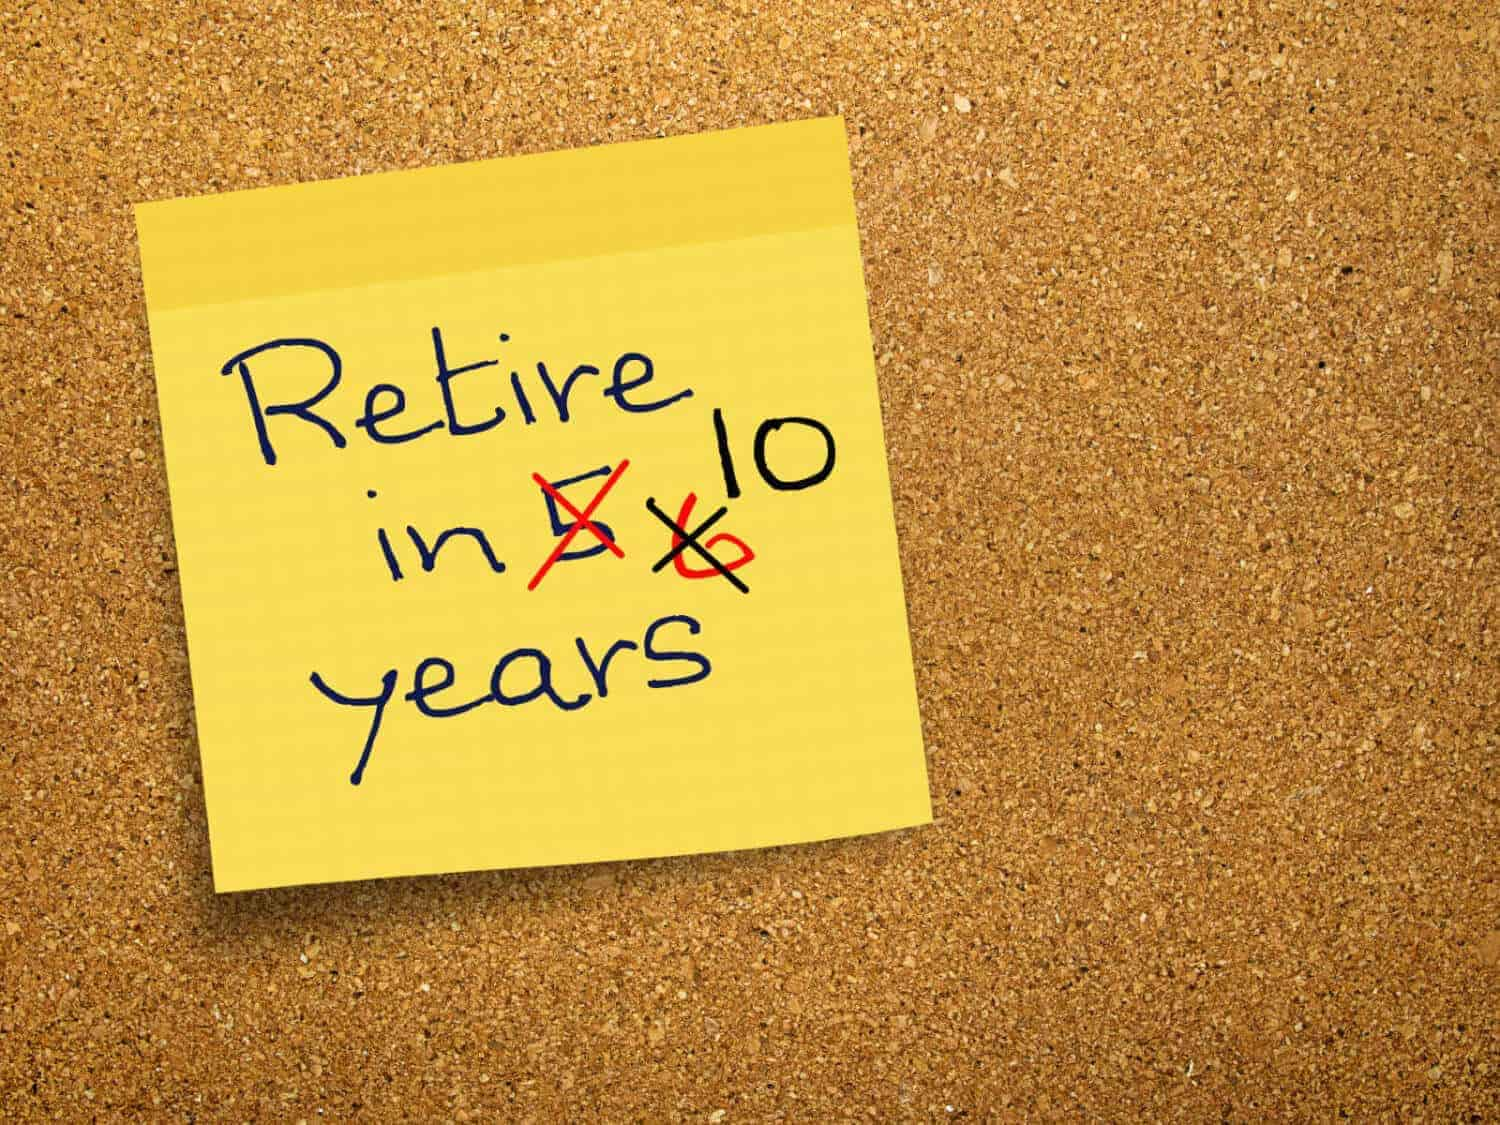 Paying credit card debt with your 401k or IRA could delay retirement significantly